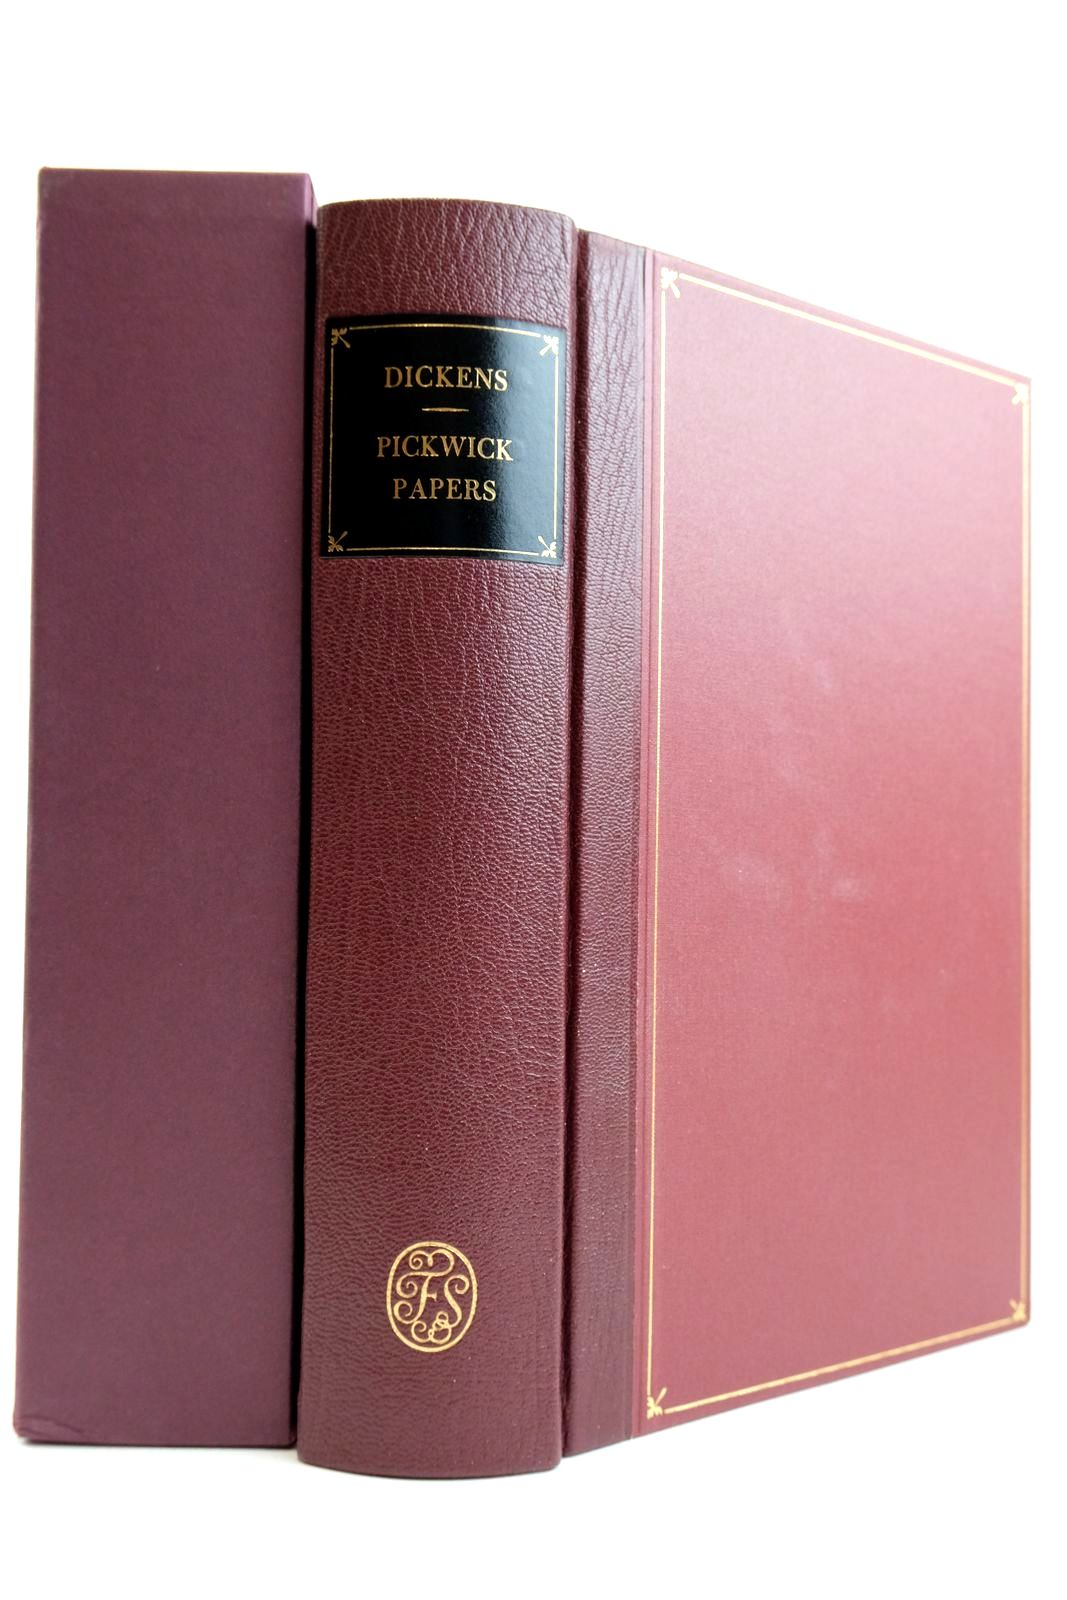 Photo of THE POSTHUMOUS PAPERS OF THE PICKWICK CLUB written by Dickens, Charles illustrated by Seymour, R. Buss, R.W. Phiz, published by Folio Society (STOCK CODE: 2132421)  for sale by Stella & Rose's Books